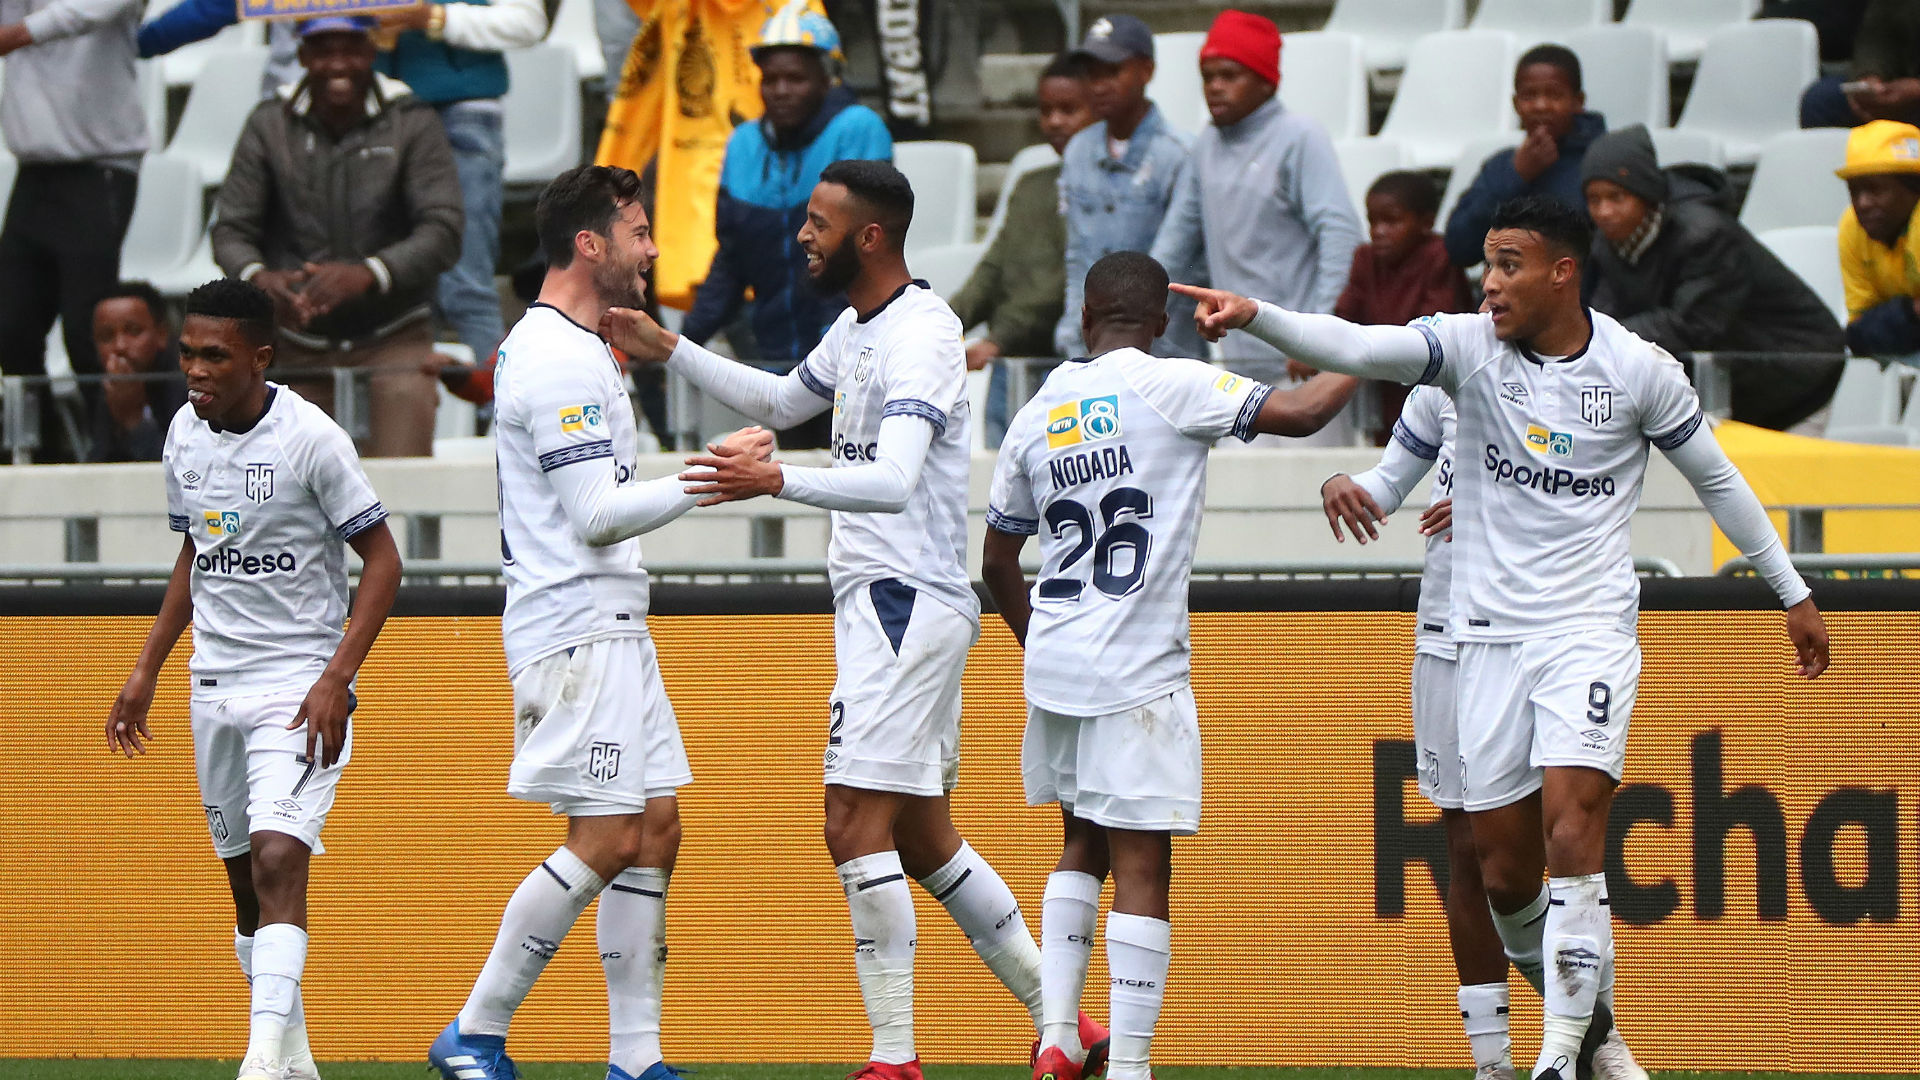 Cape Town City players August 2018